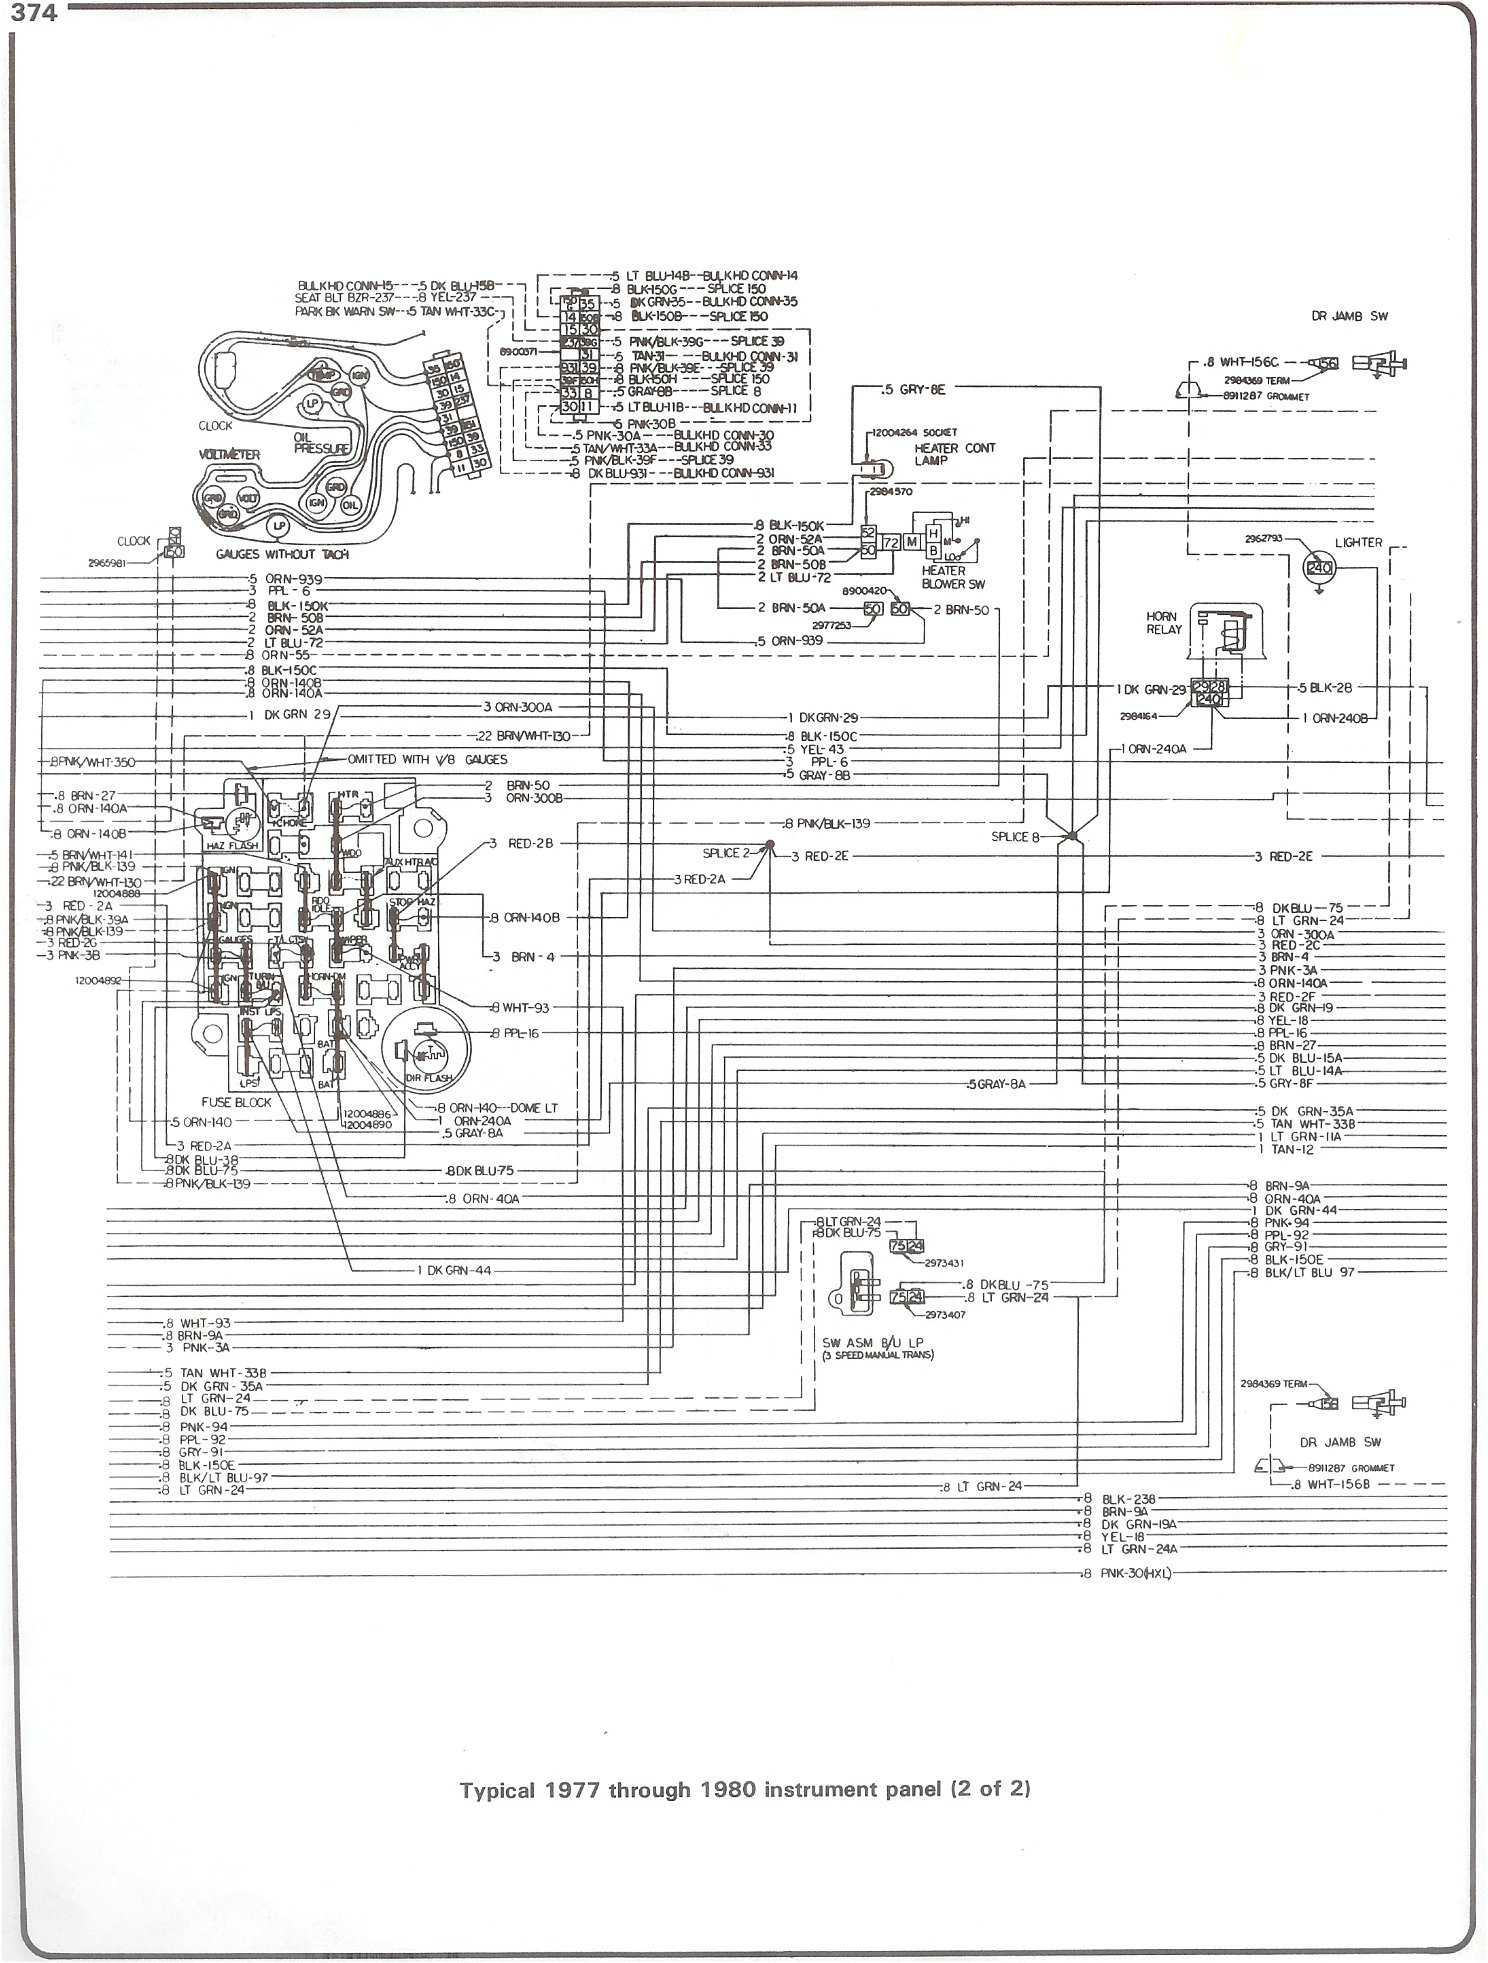 1987 Astro Van Wiring Diagram Will Be A Thing 91 Mustang Starter Free Picture Complete 73 87 Diagrams 1996 2000 Circuit